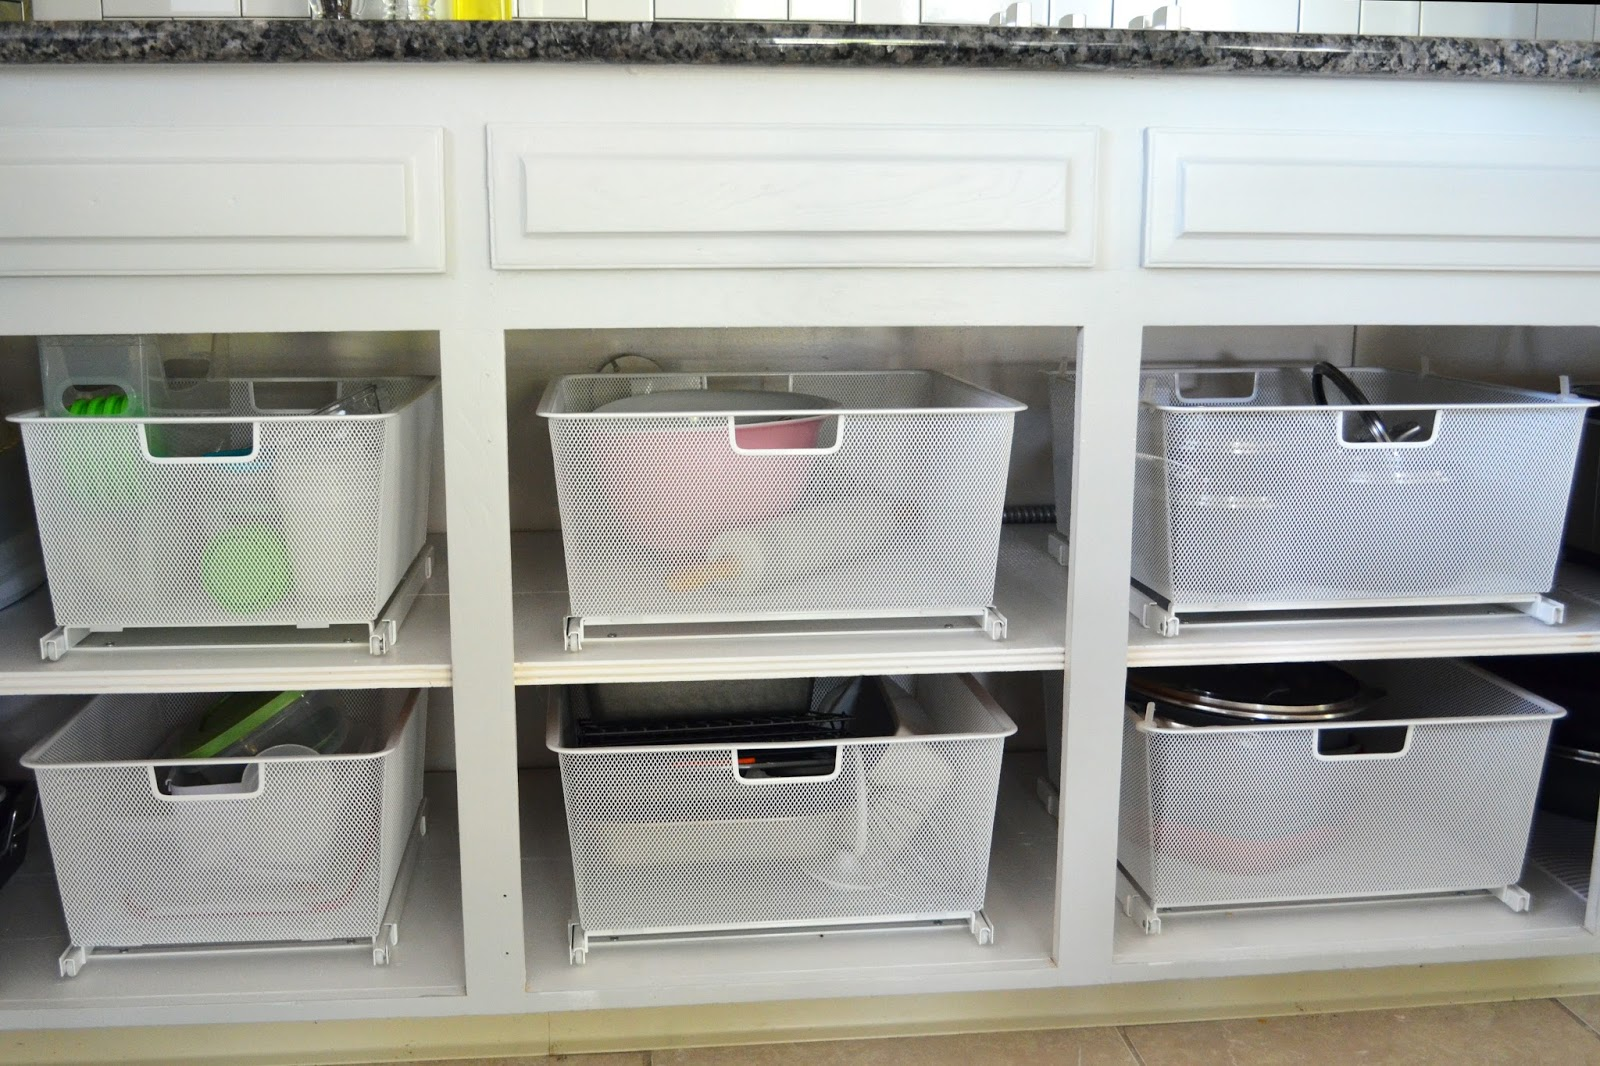 Stacy + Charlie: kitchen cabinet organization